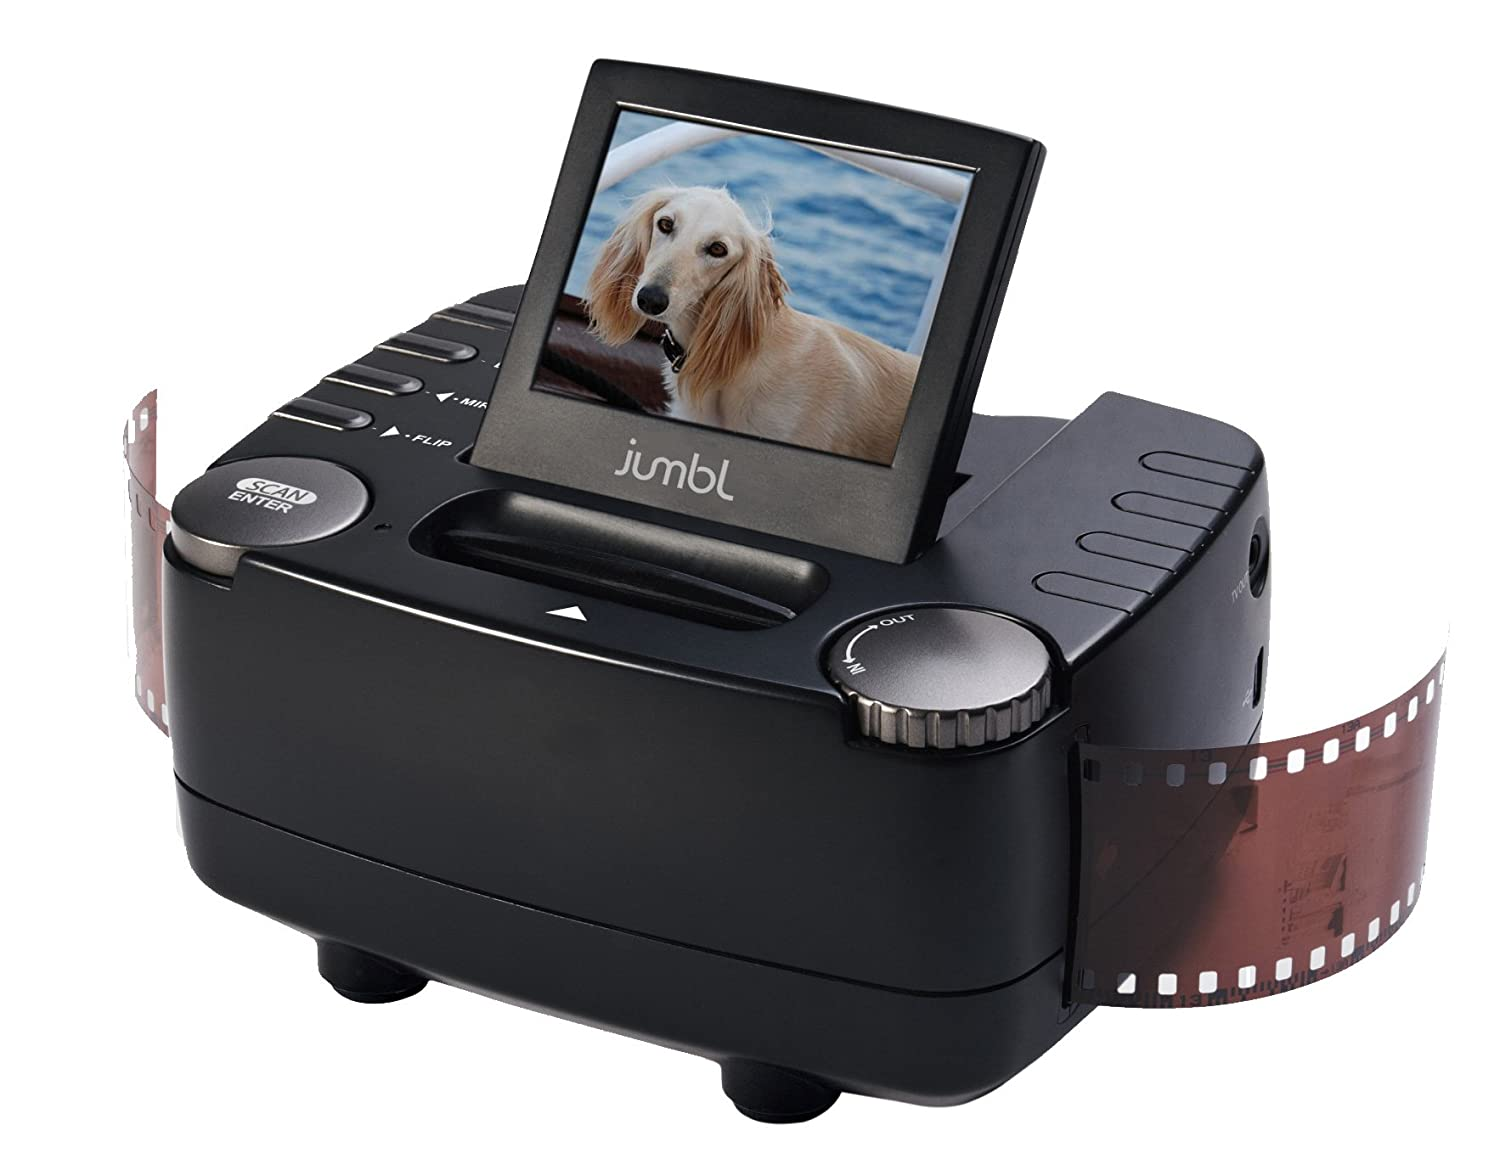 Top 5 Best Negative Film and Slide Digital Scanners for 2018-2019 cover image